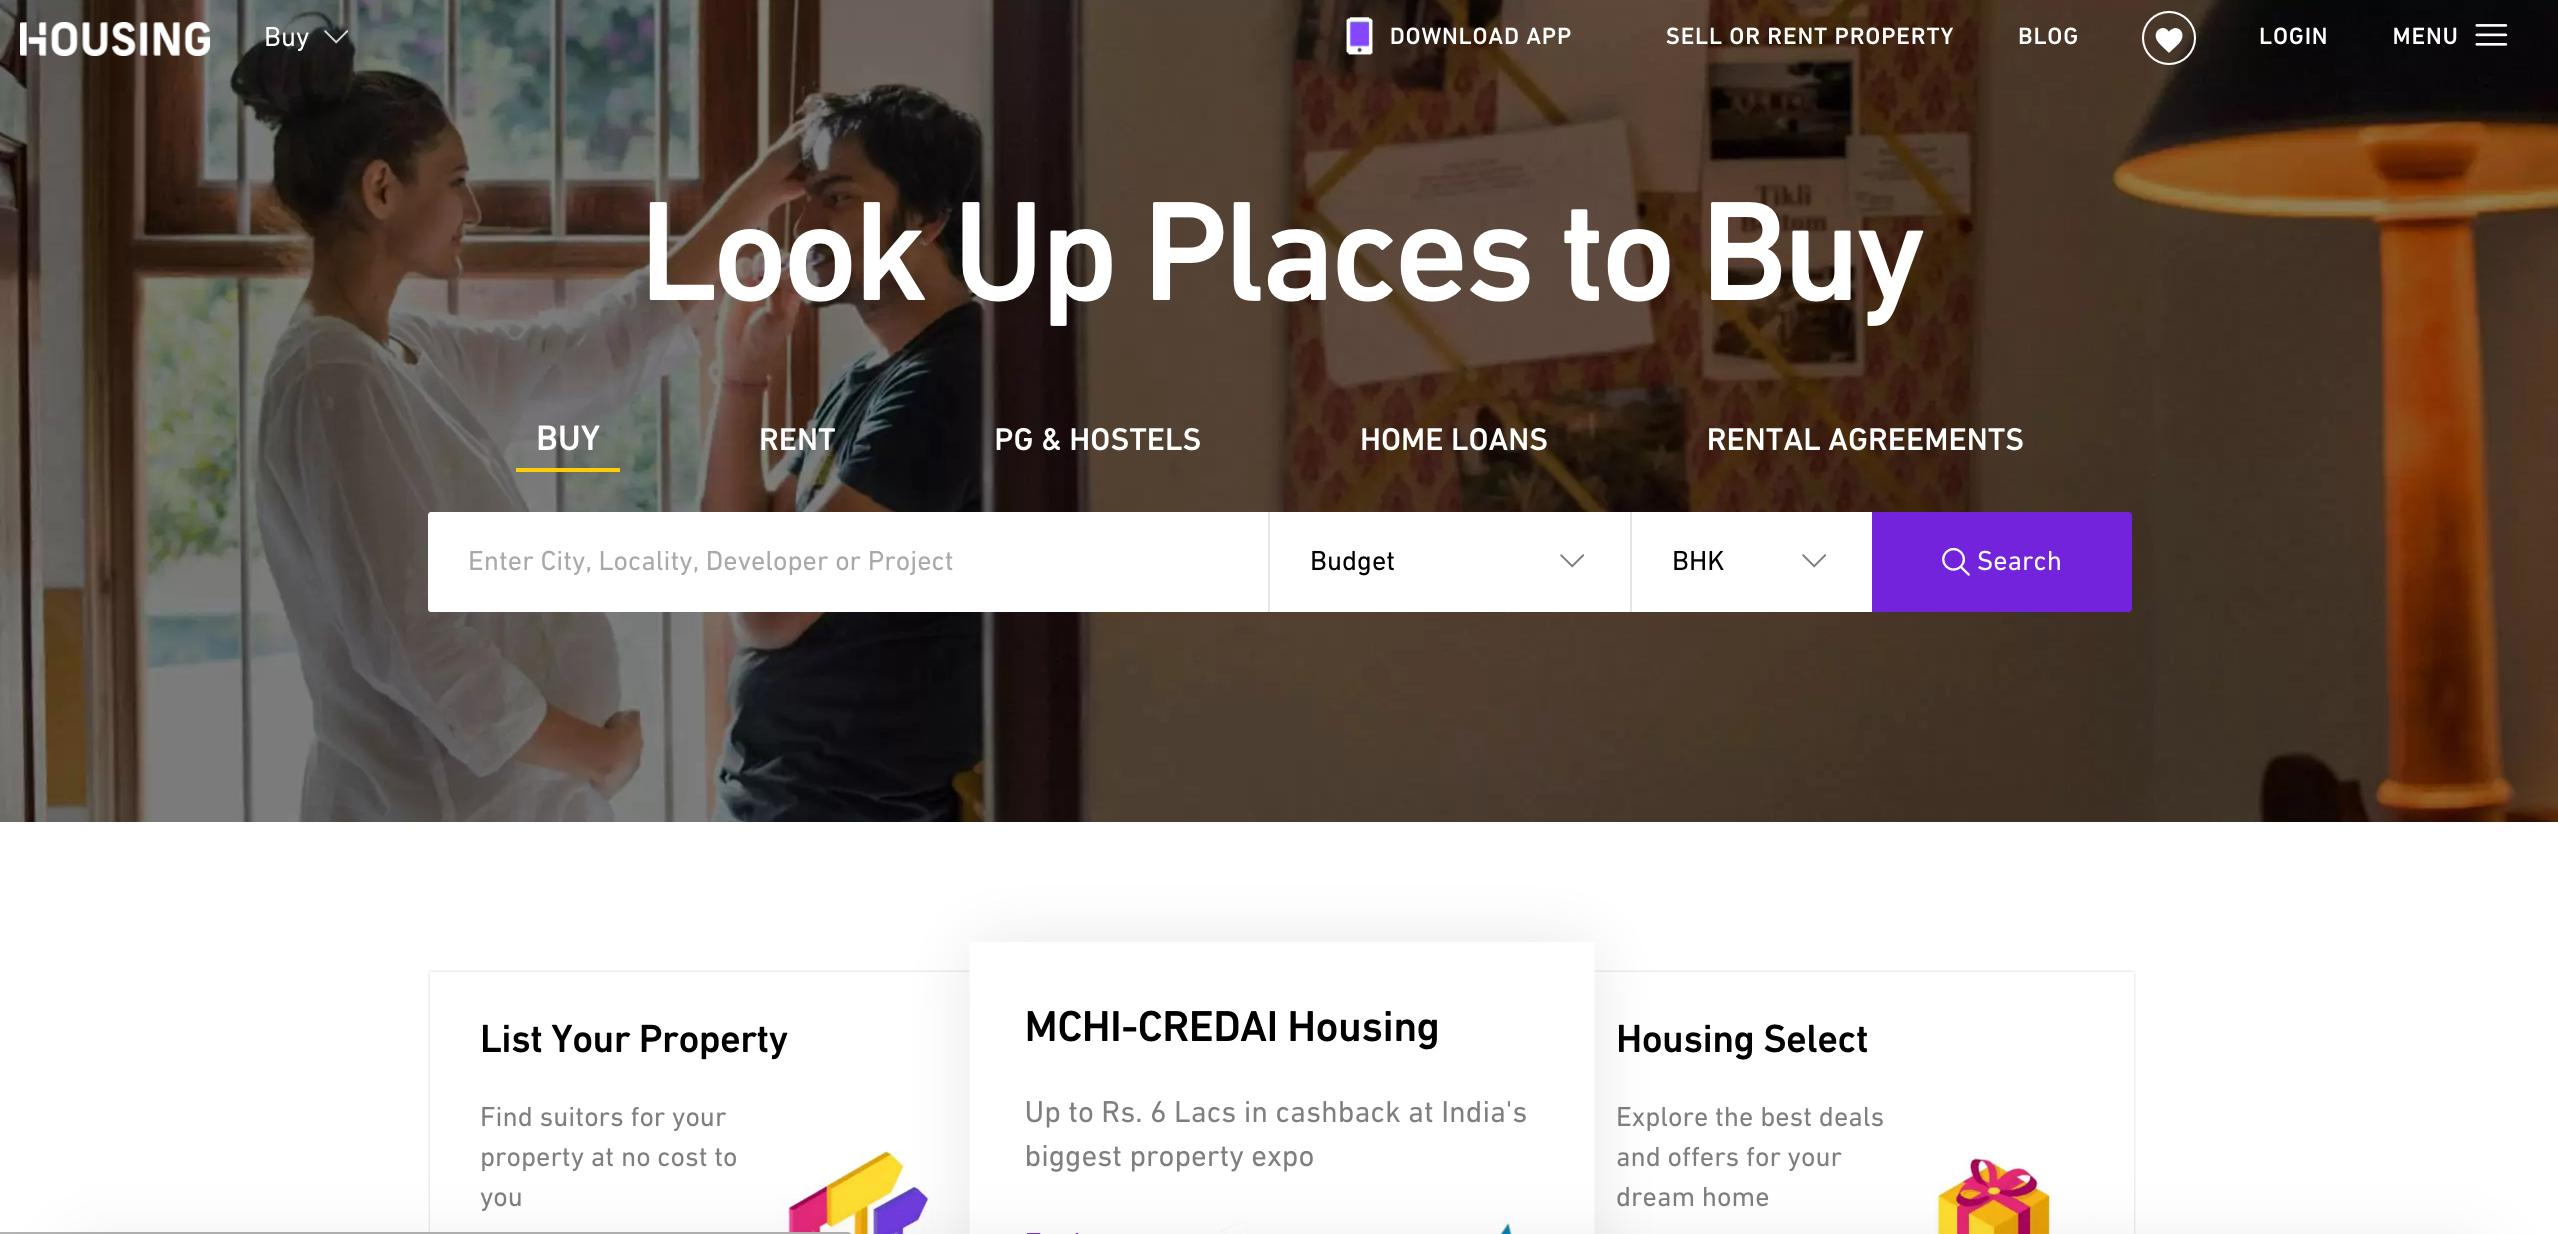 Housing screenshot